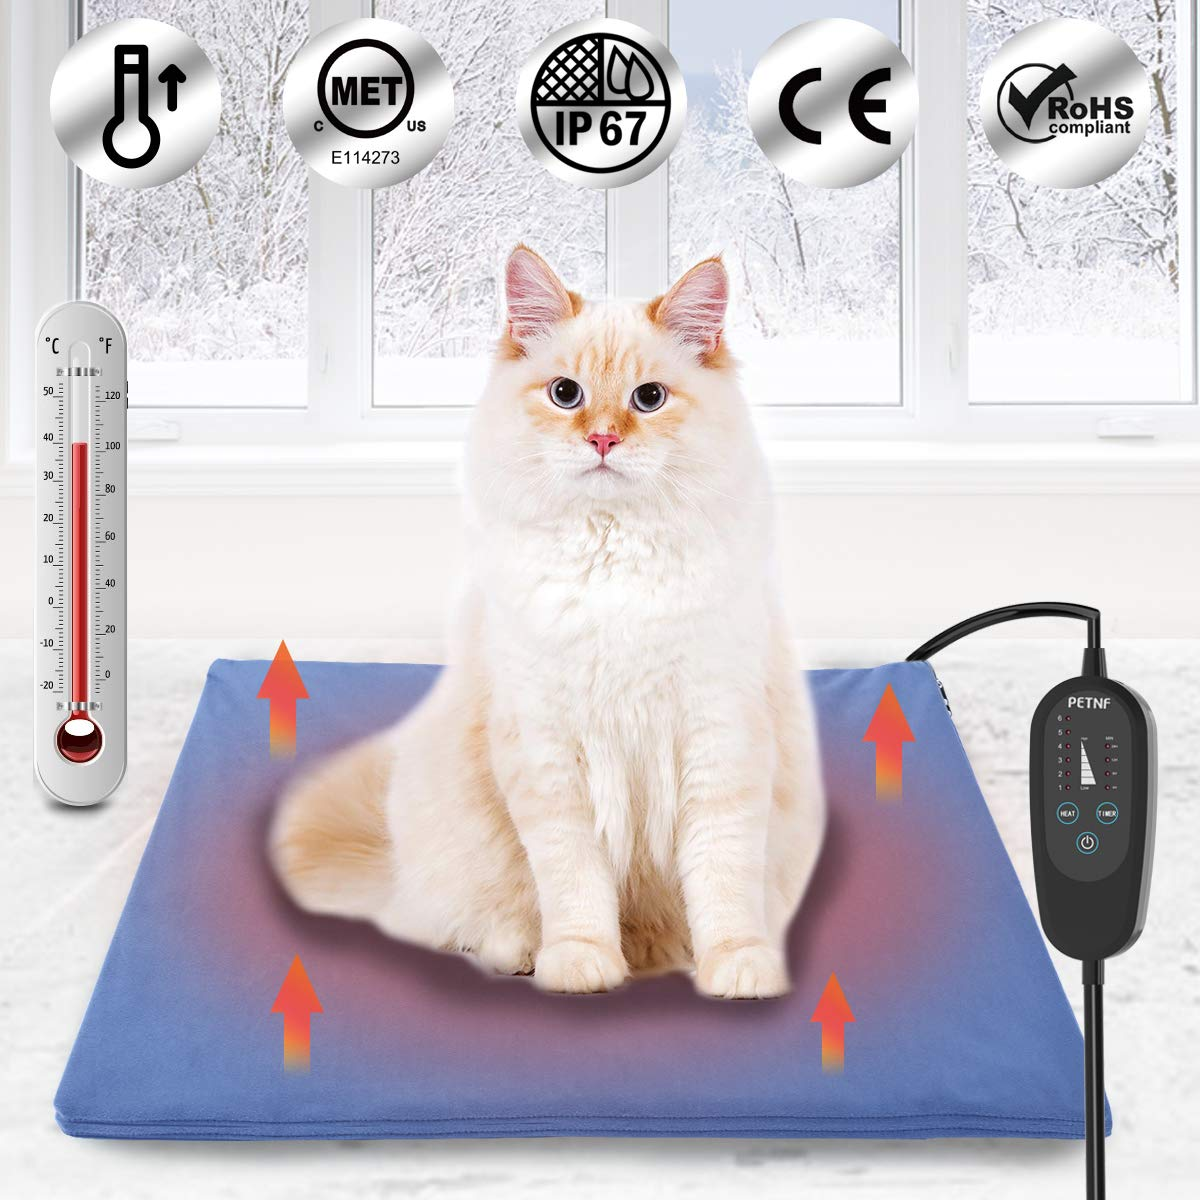 Upgraded Pet Heating Pad for Dogs Cats with Timer,Safety Cat Dog Heating Pad,Waterproof Electric Heated Cat Dog Bed Mat,Heated Pad Dog House Heater,Heated Dog Cat Blanket,Heated Pet Bed Mat